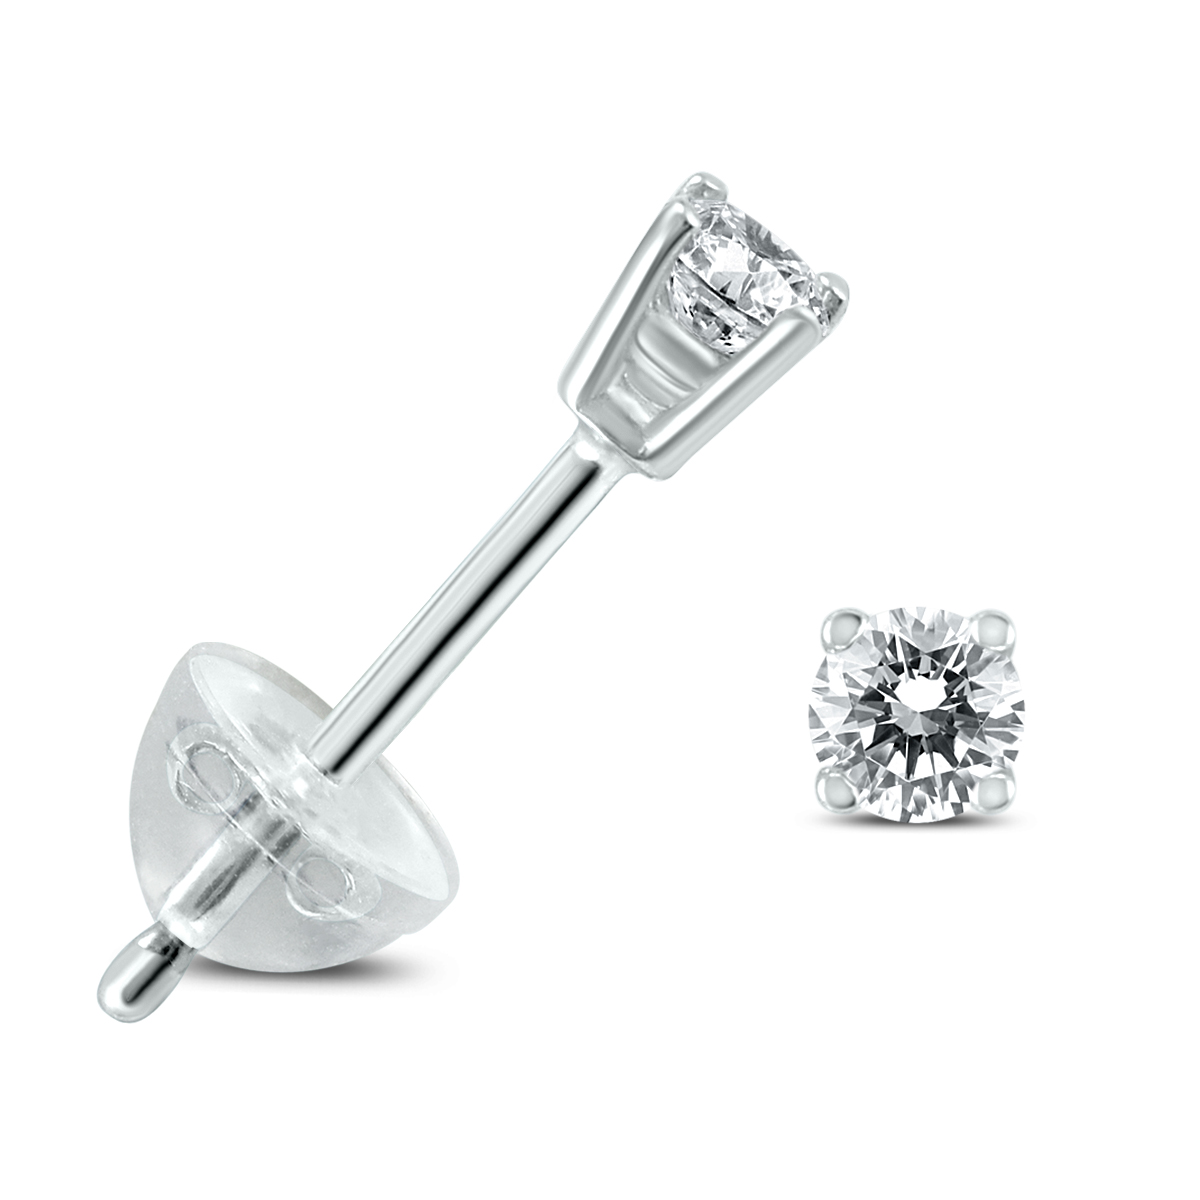 .05CTW Round Diamond Solitaire Stud Earrings In 14k White Gold with Silicon Backs